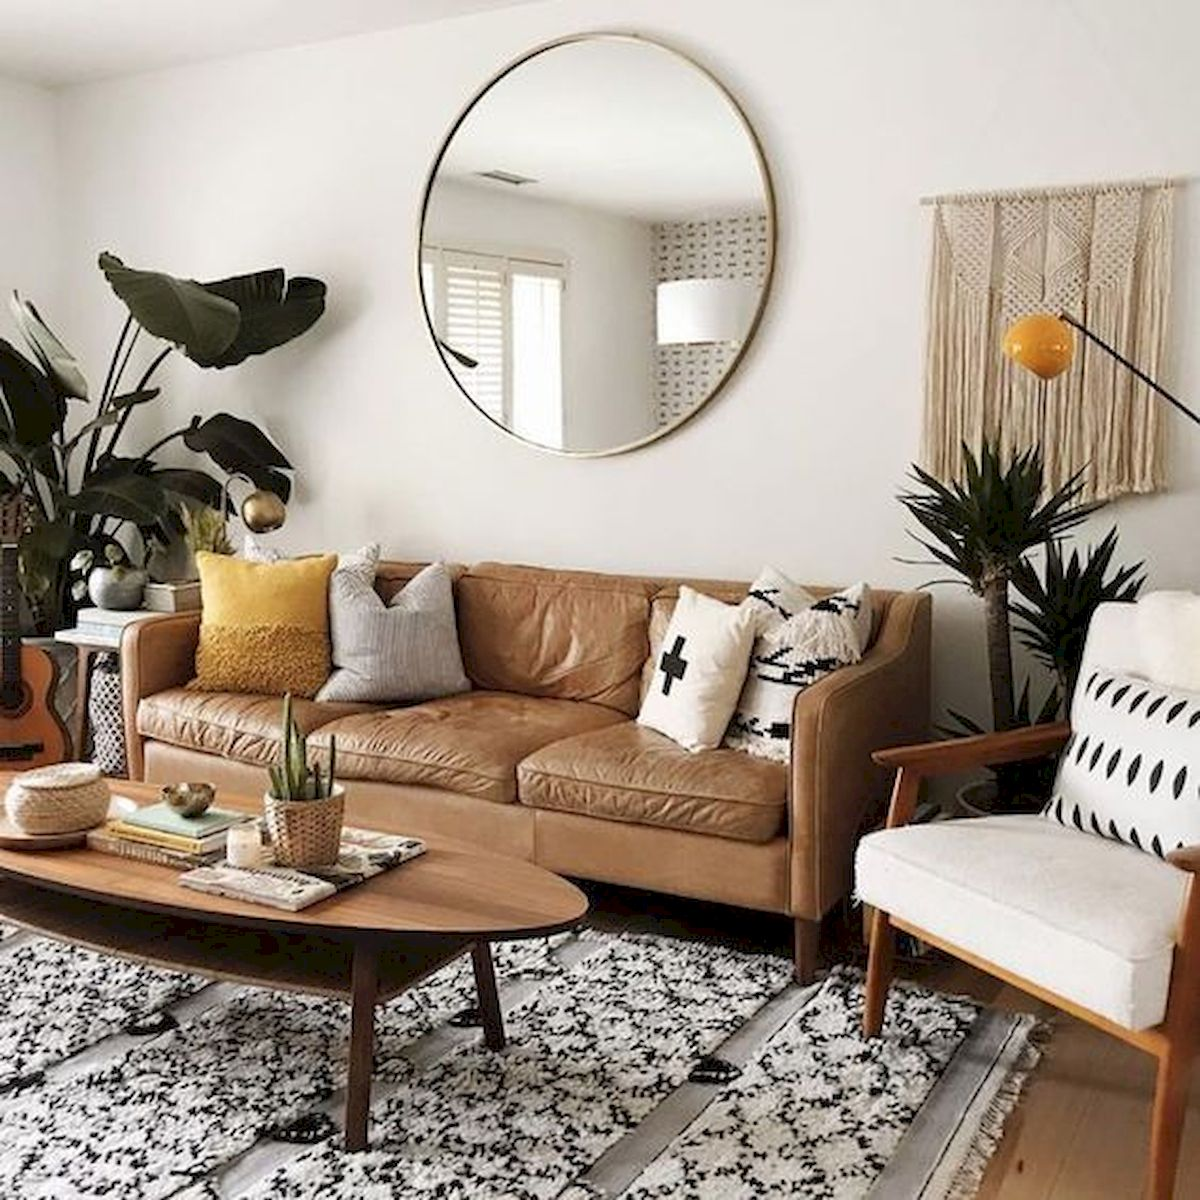 57 Cozy Living Room Apartment Decor Ideas (12)